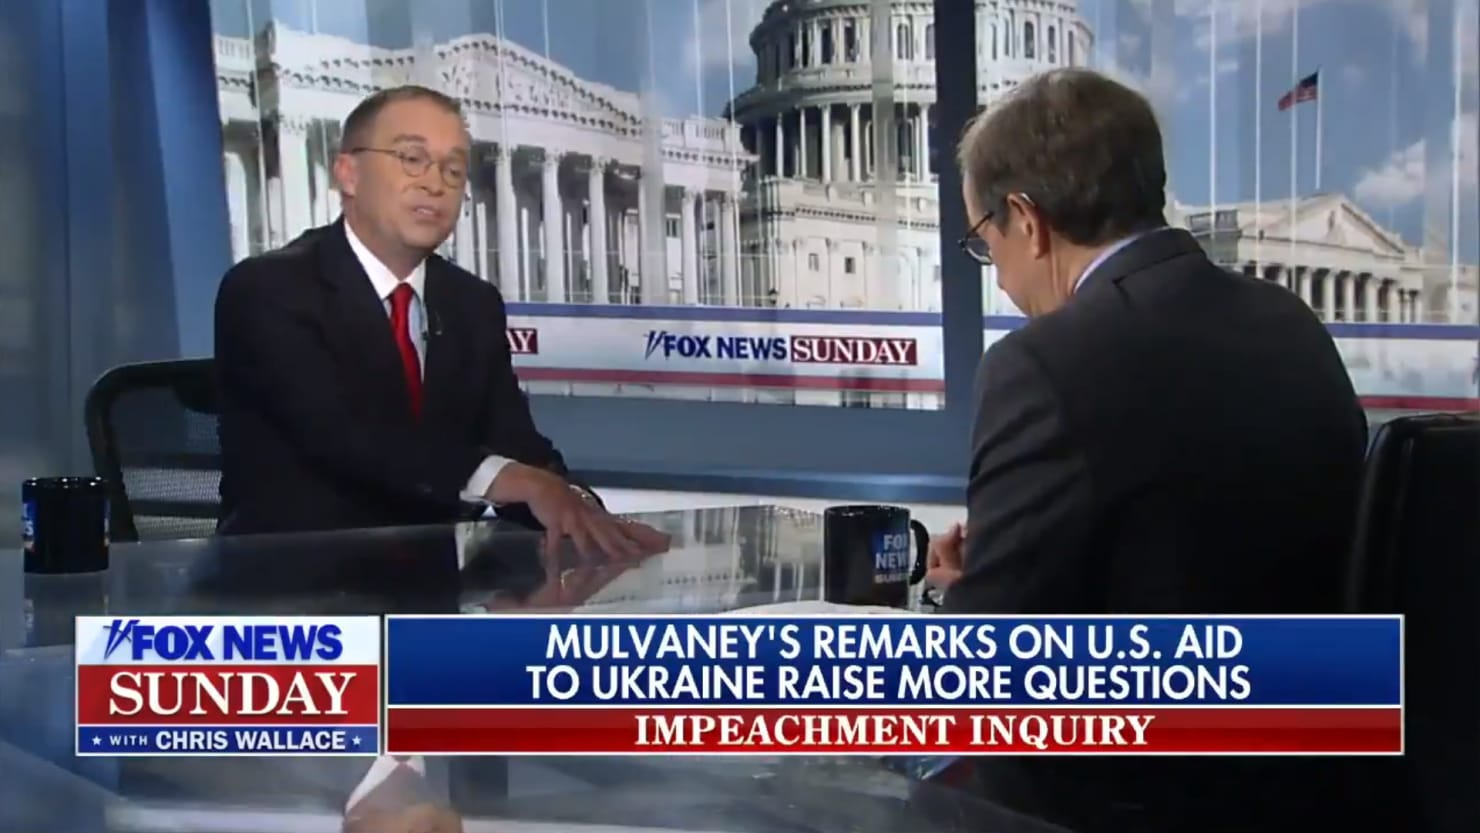 thedailybeast.com - Justin Baragona - Mick Mulvaney Melts Down Under Brutal Grilling By Fox's Chris Wallace